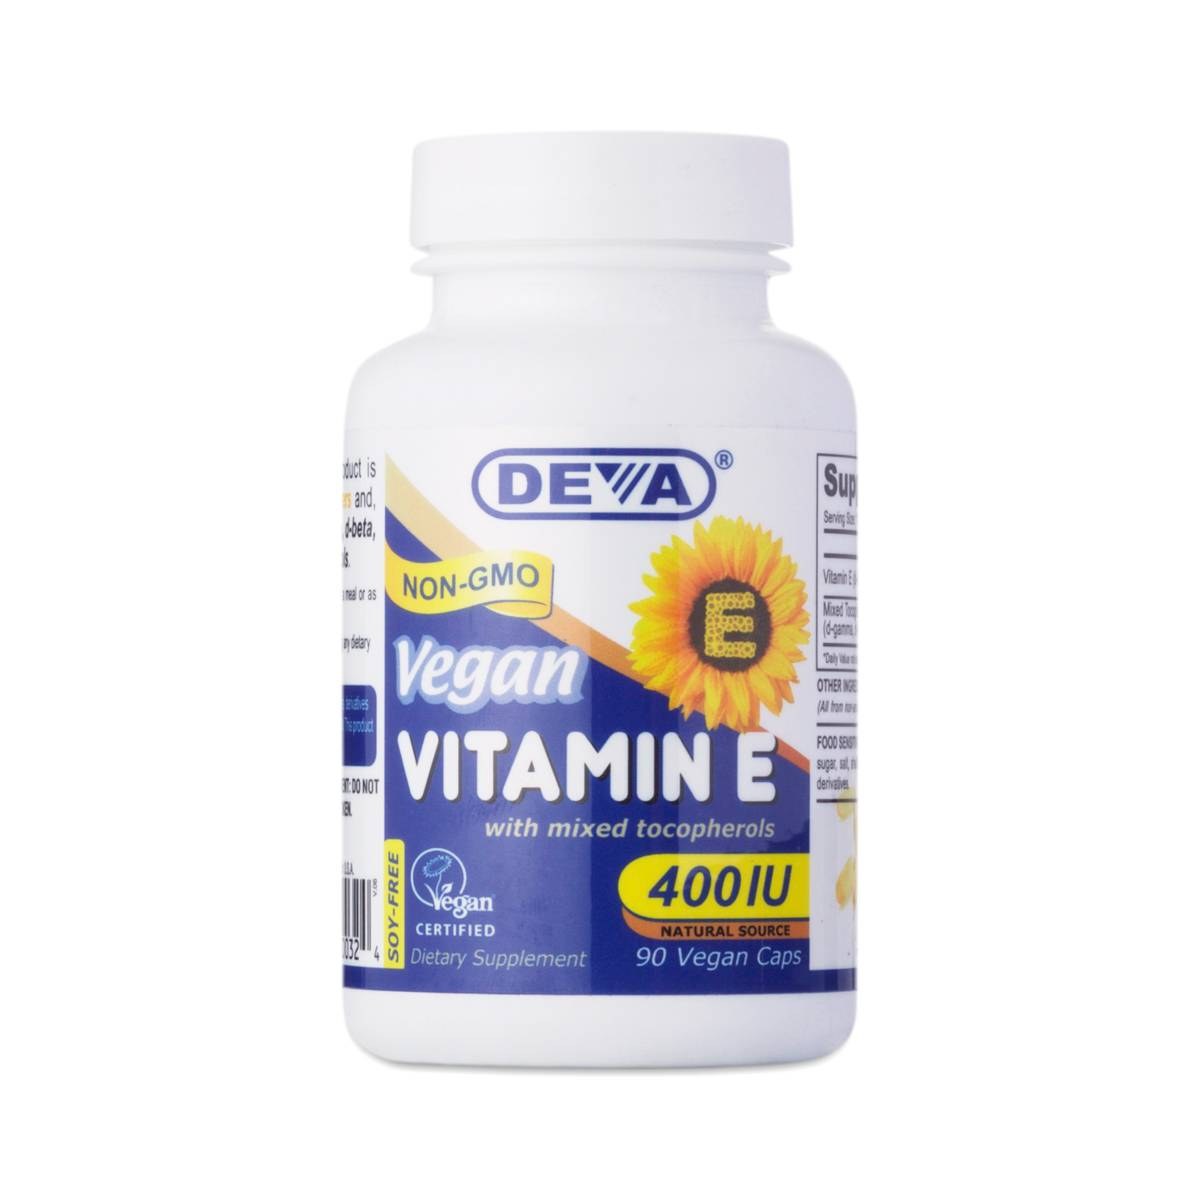 90 caps Vitamin E, Vegan by Deva - Thrive Market